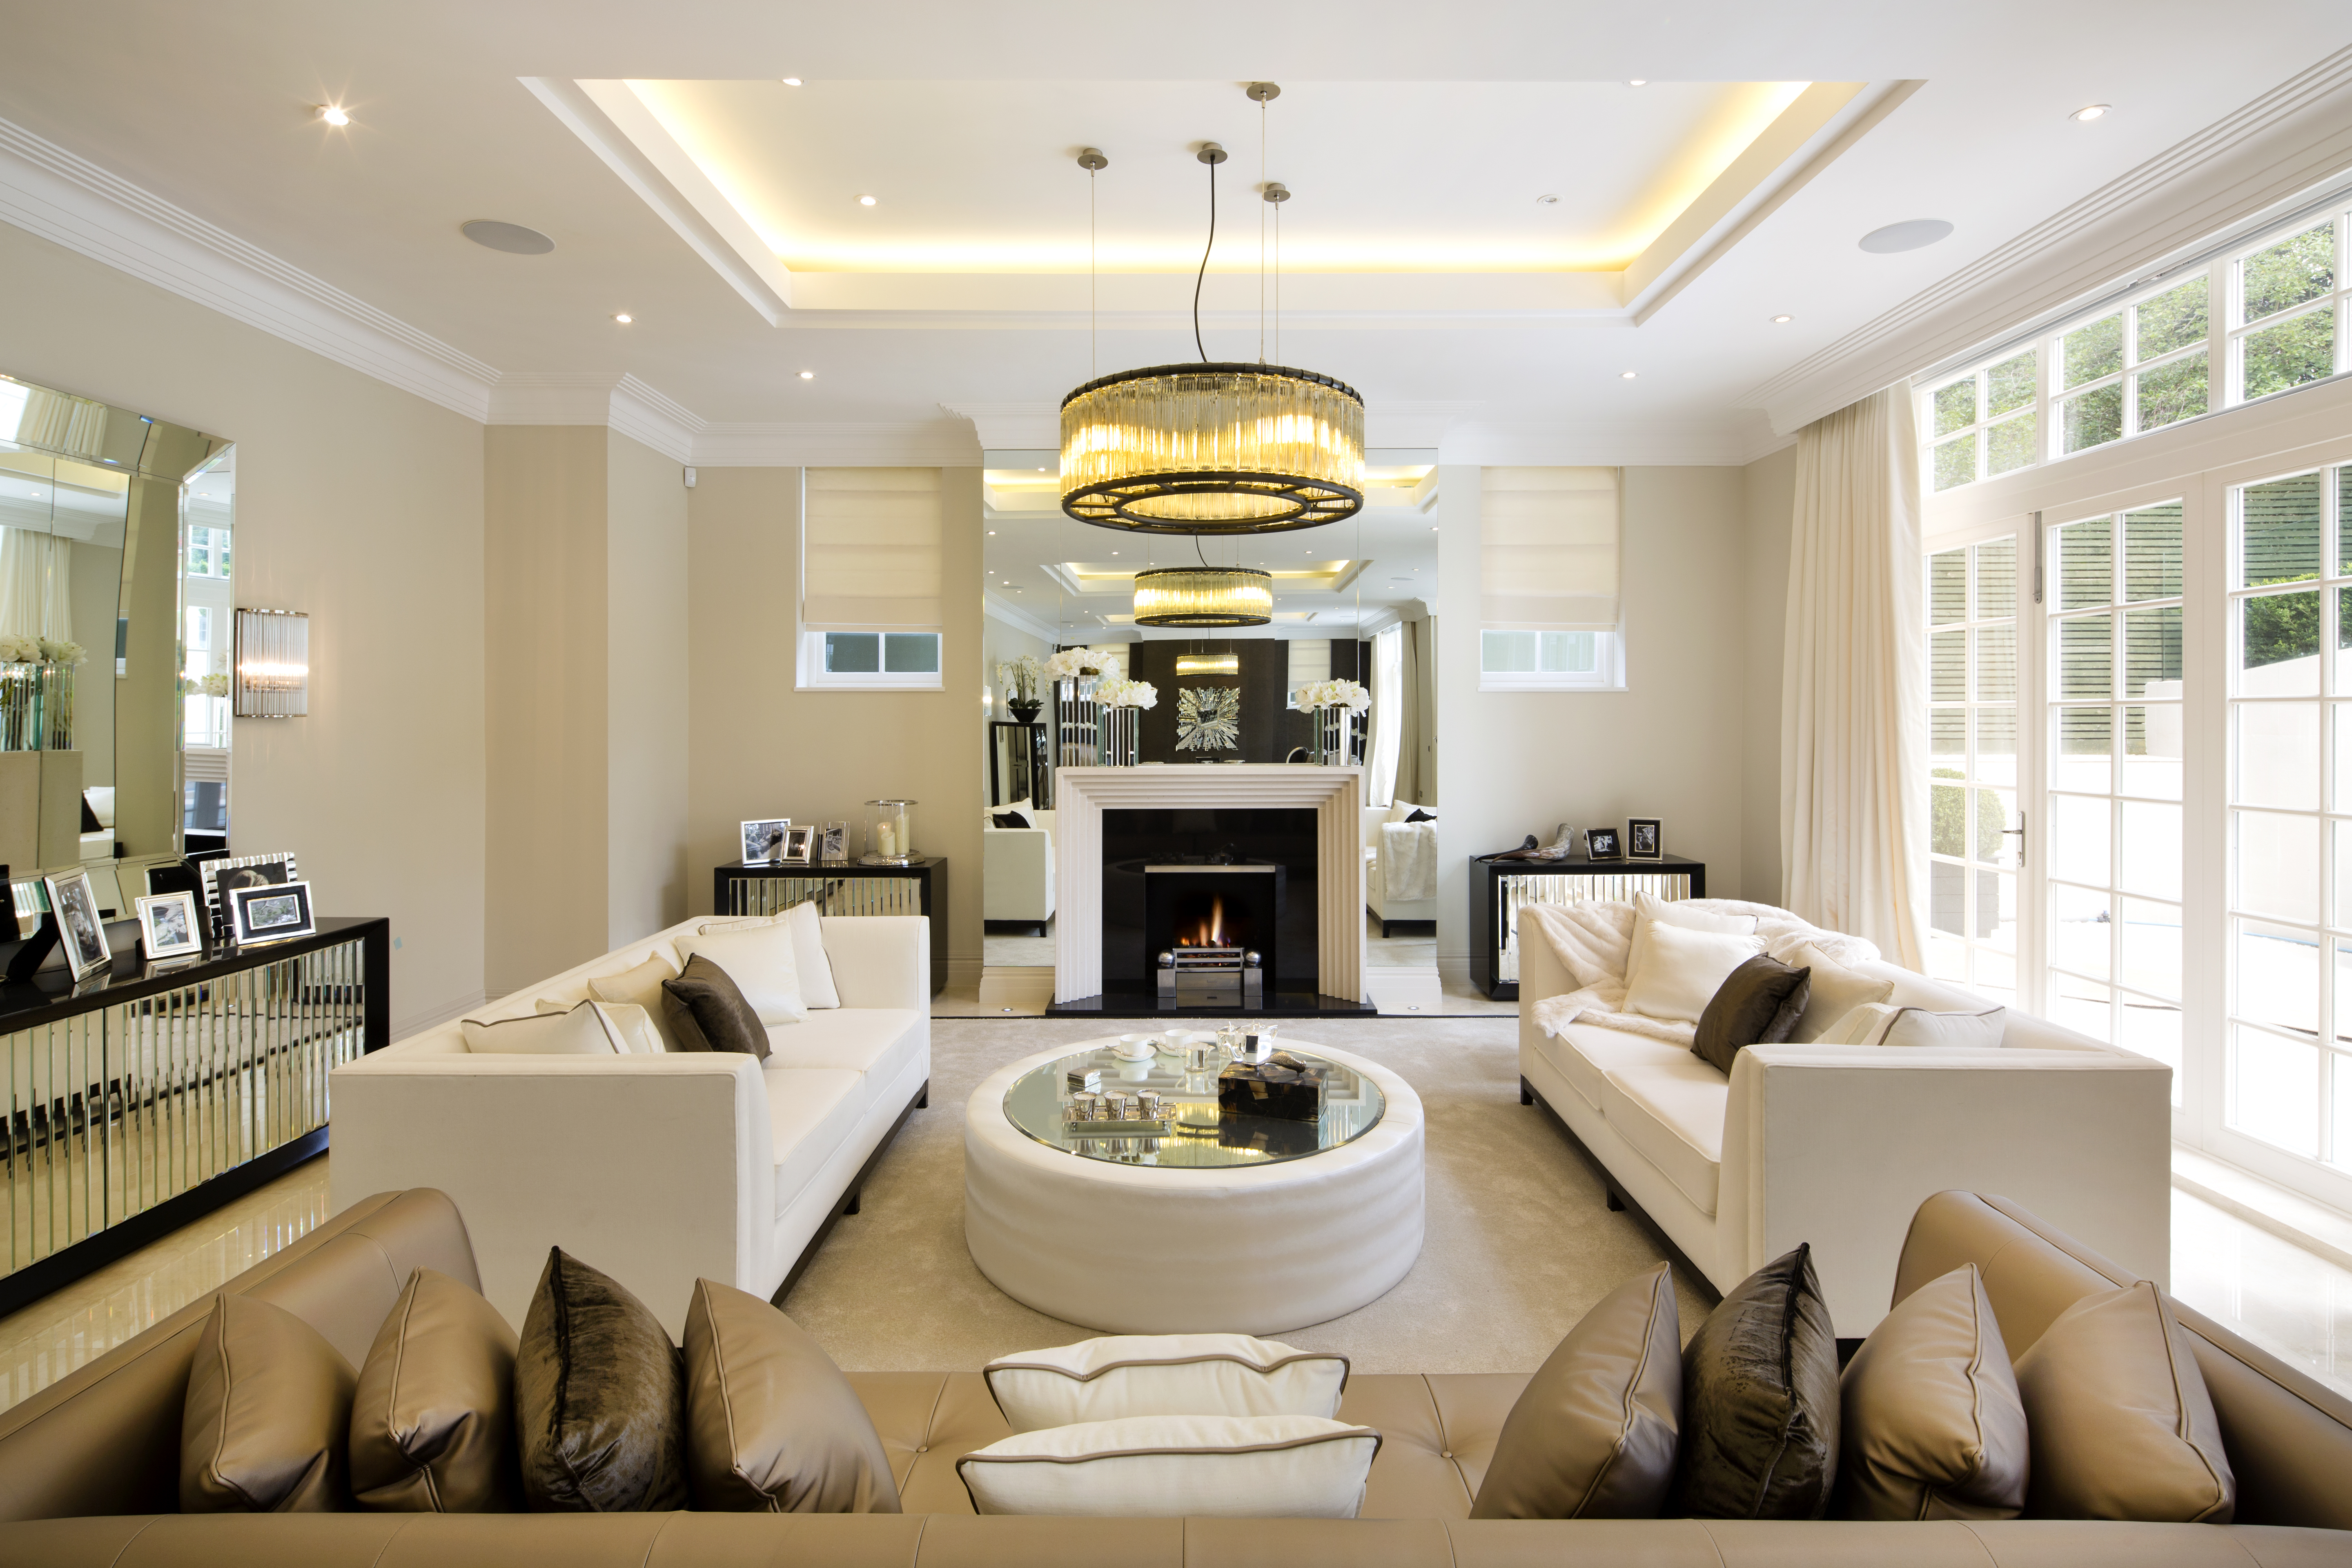 Your Hallway And Living Room Can Have Bright Chandeliers Or Hanging Lights To Mark The Entrance